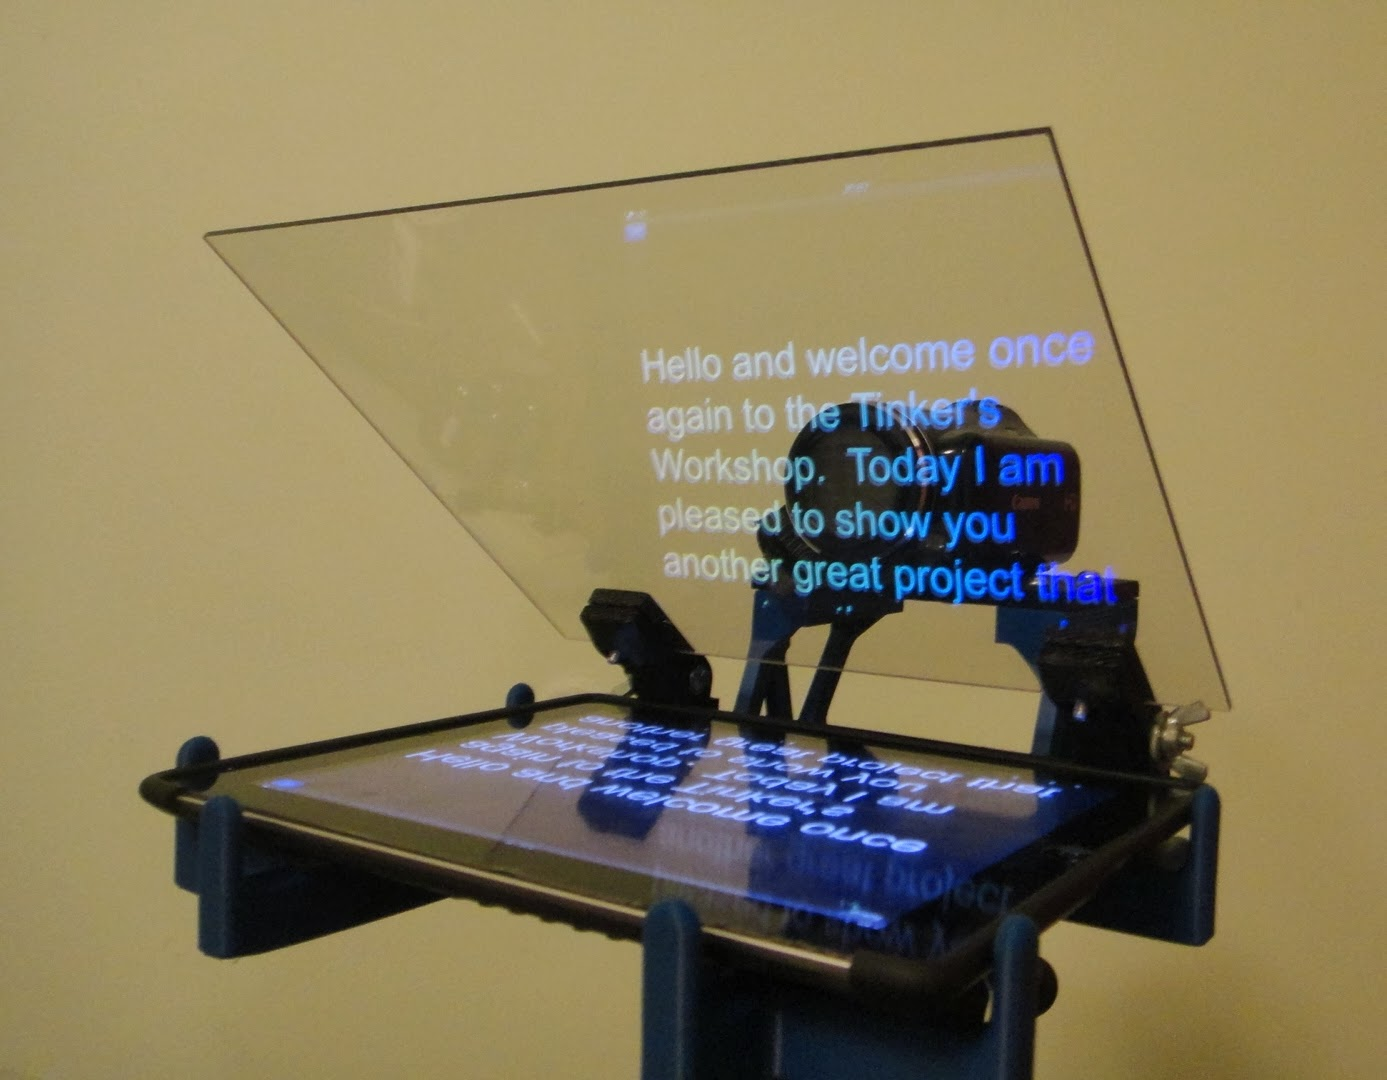 The Tinkers Workshop 3D Printed IPad Video Teleprompter